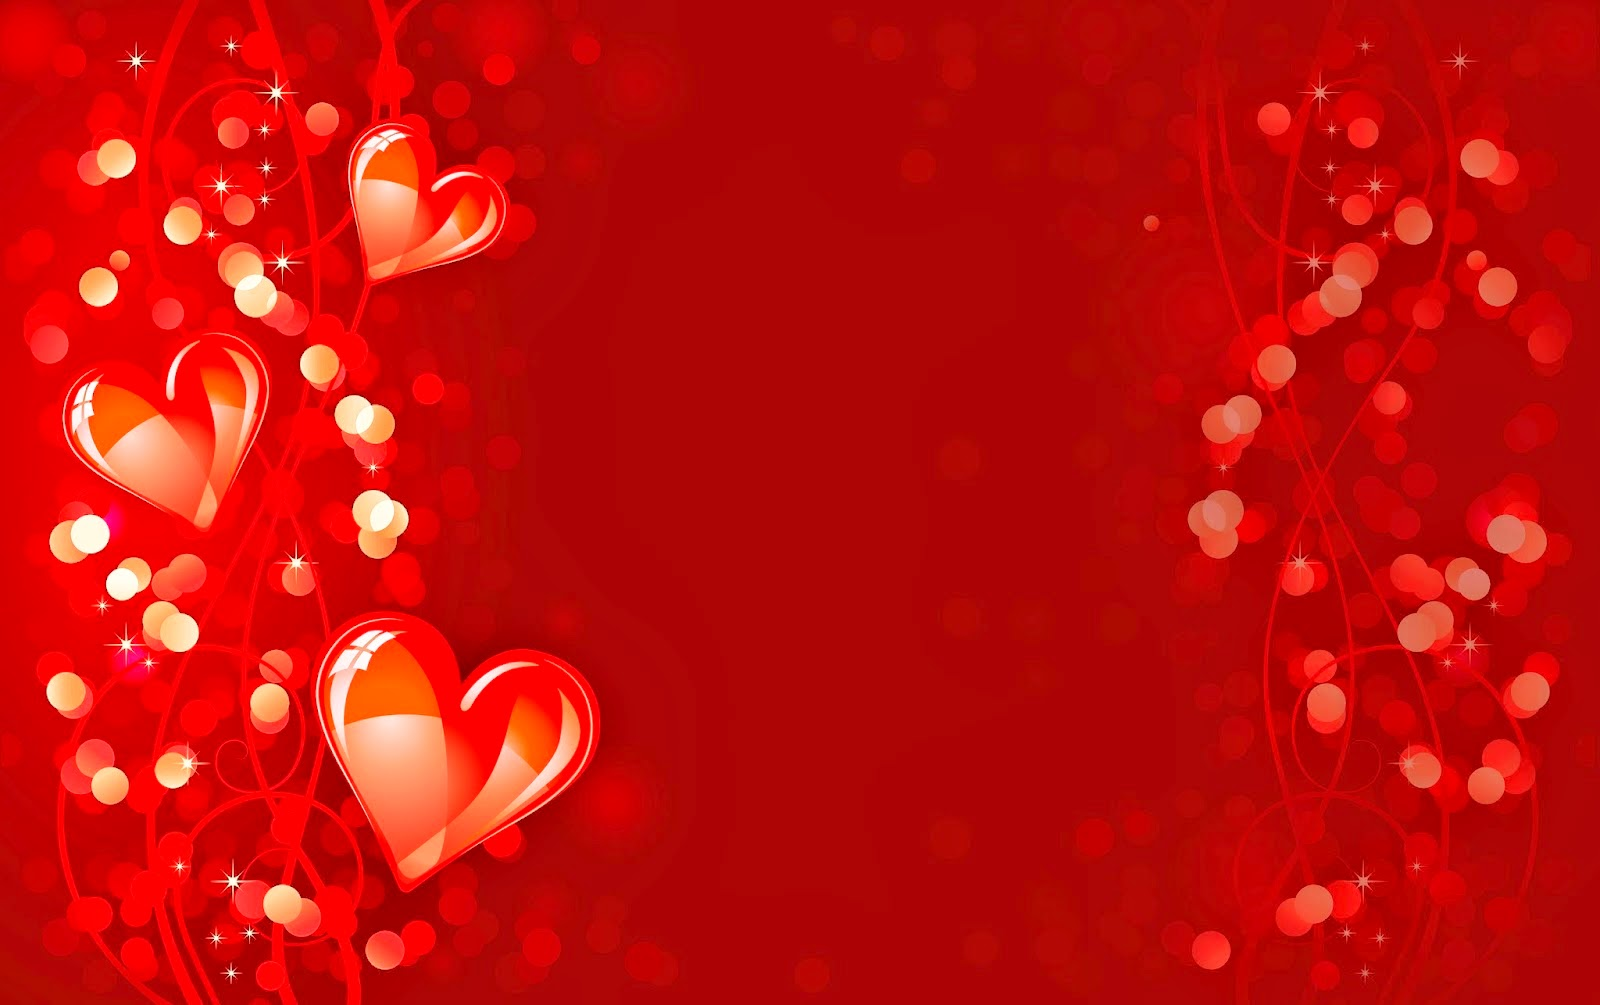 Love Wallpaper Background Images For Whatsapp